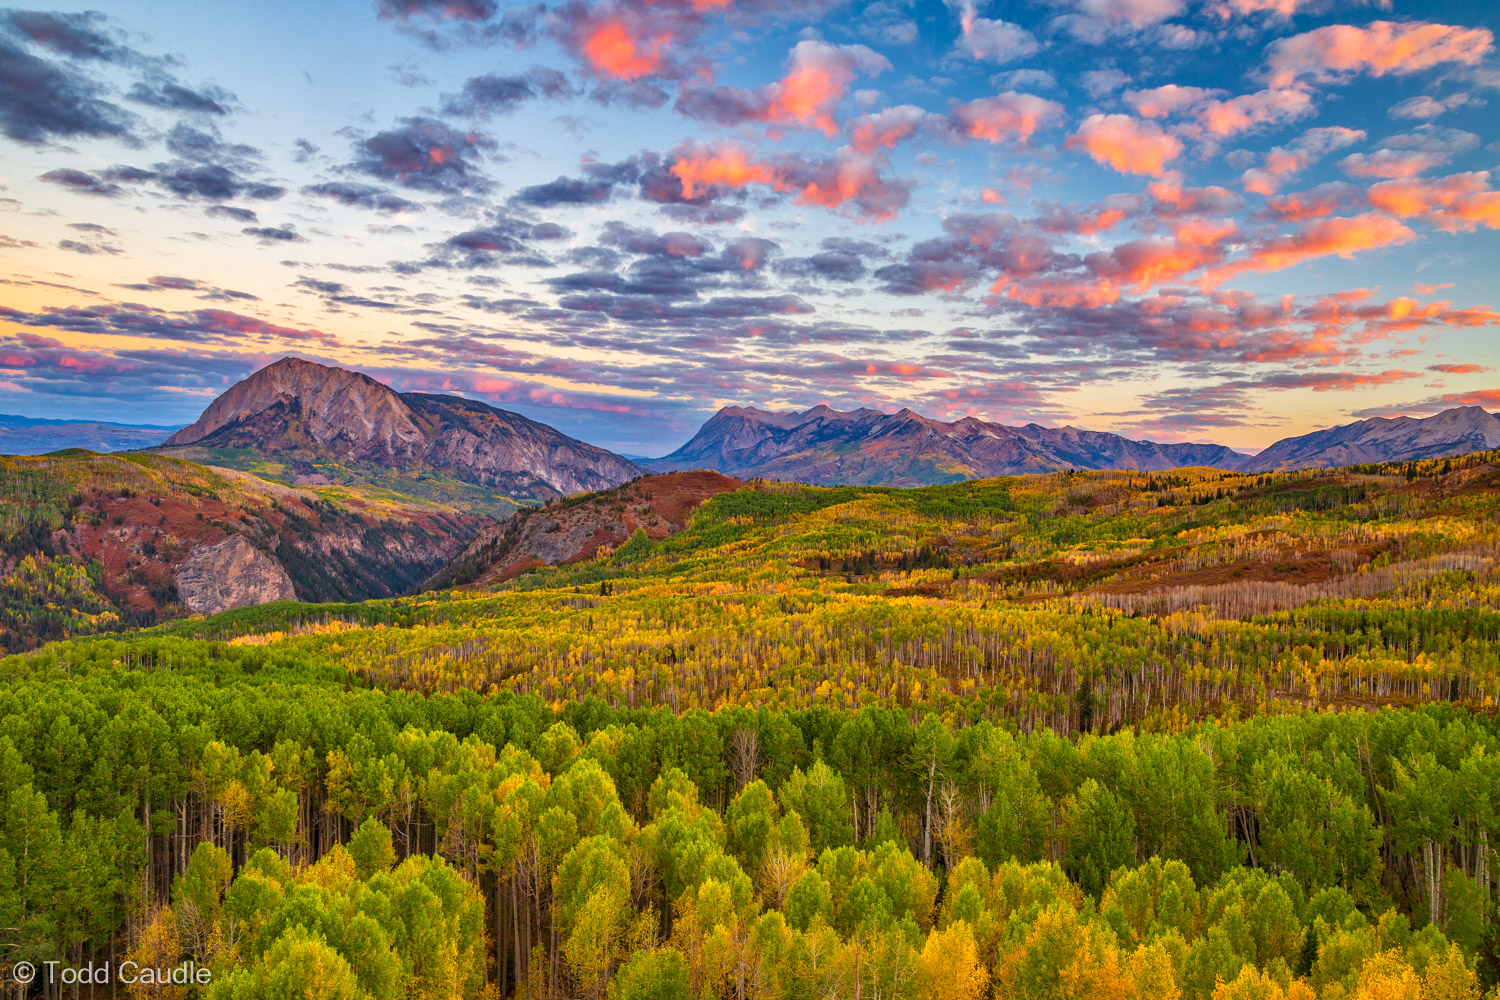 The aspens are just beginning to put on their annual autumn show in this sunrise view toward Dark Canyon and Marcellina Mountain...